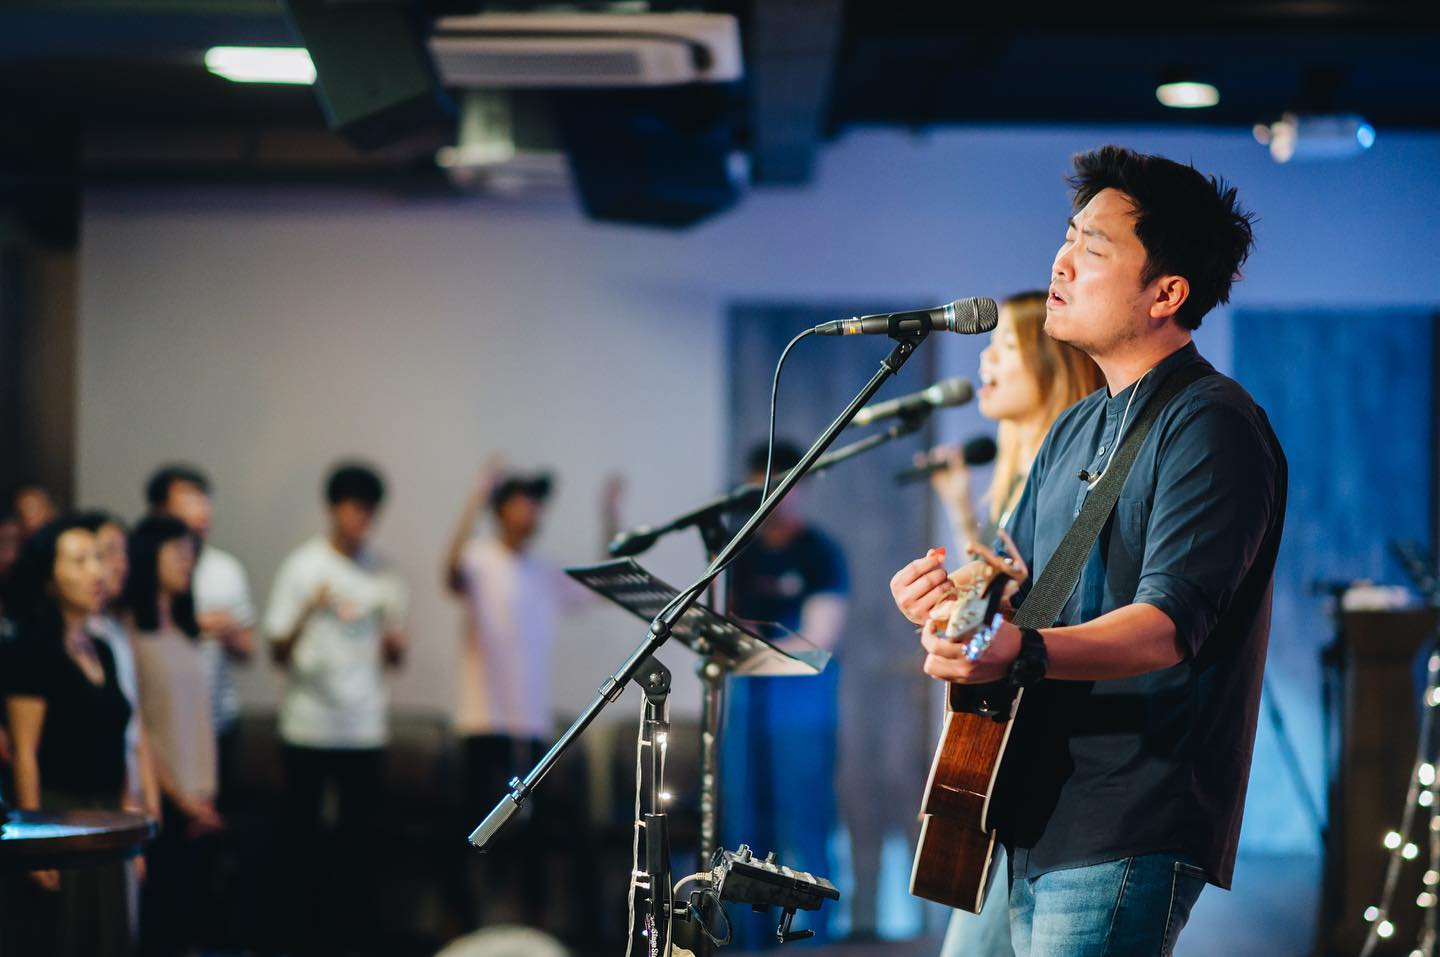 Revival nights - Besides convergences, classes, one-to-one mentoring, and electives, Awaken Generation also hosts monthly Revival Nights that take place on Wednesdays where students get an opportunity to serve on the worship team or simply soak and receive in a worship environment.